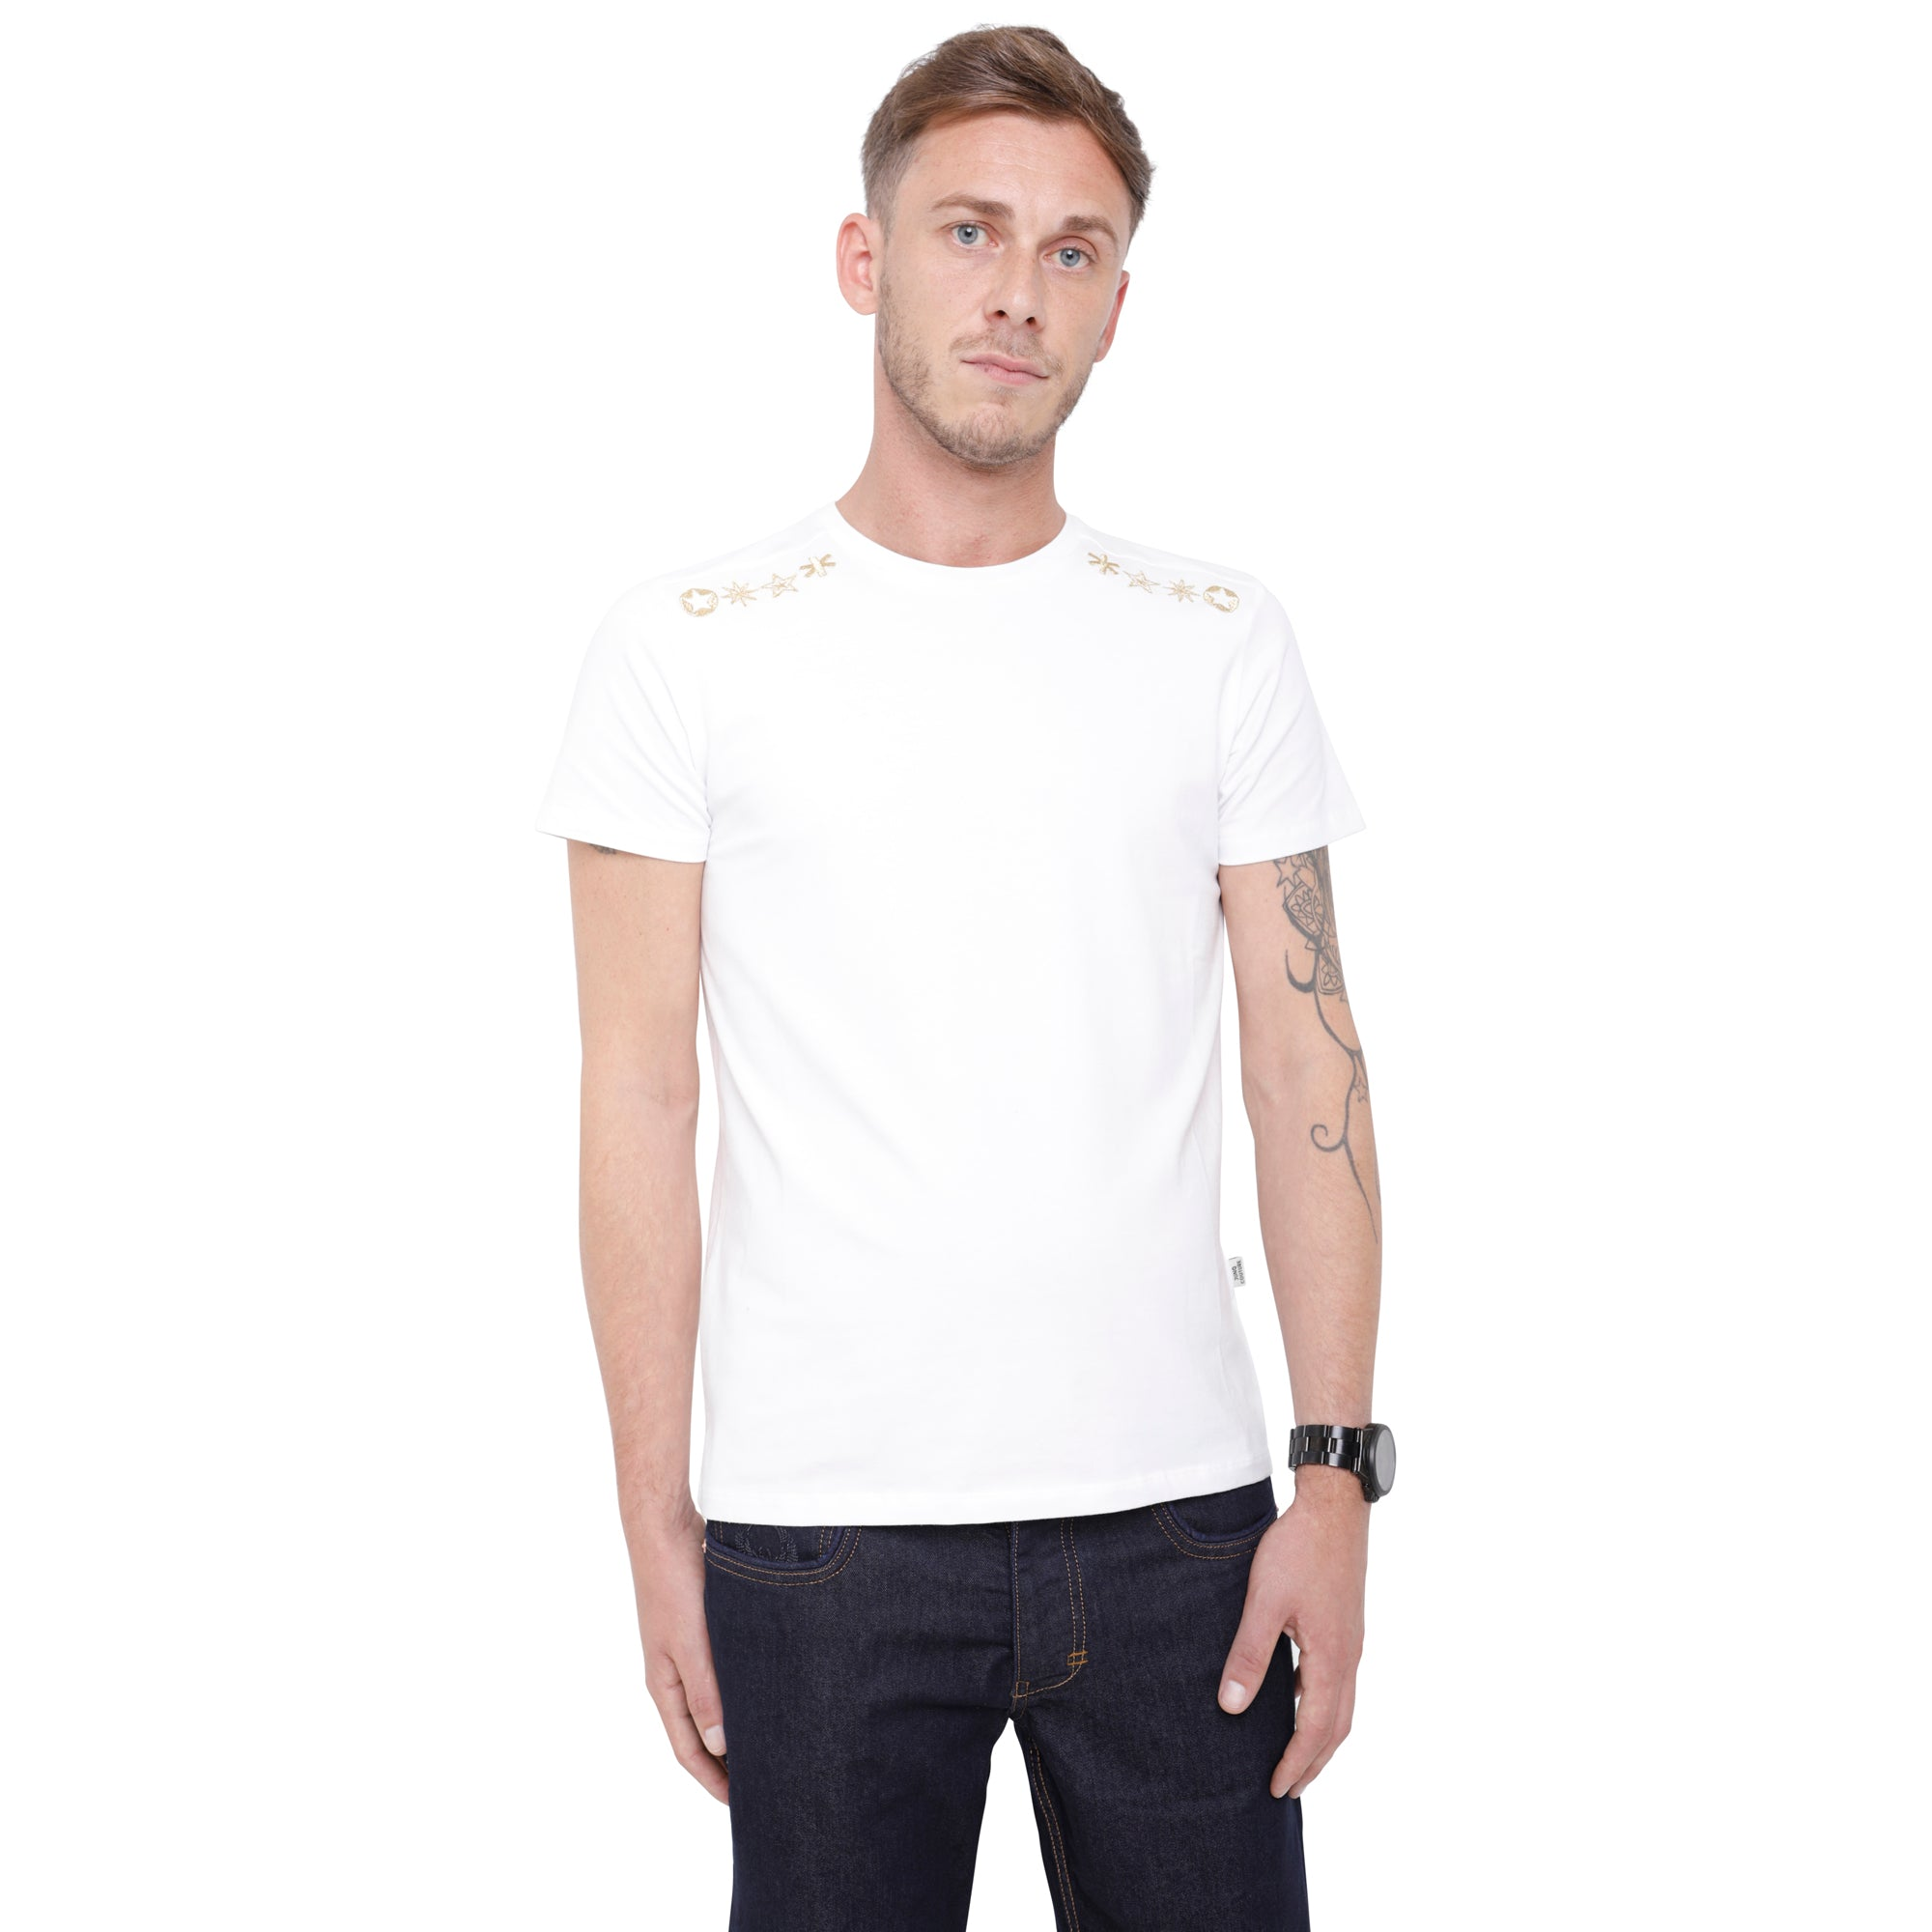 Style: Qebi 92 White Luxury Crew Neck T-Shirt - Junq Couture